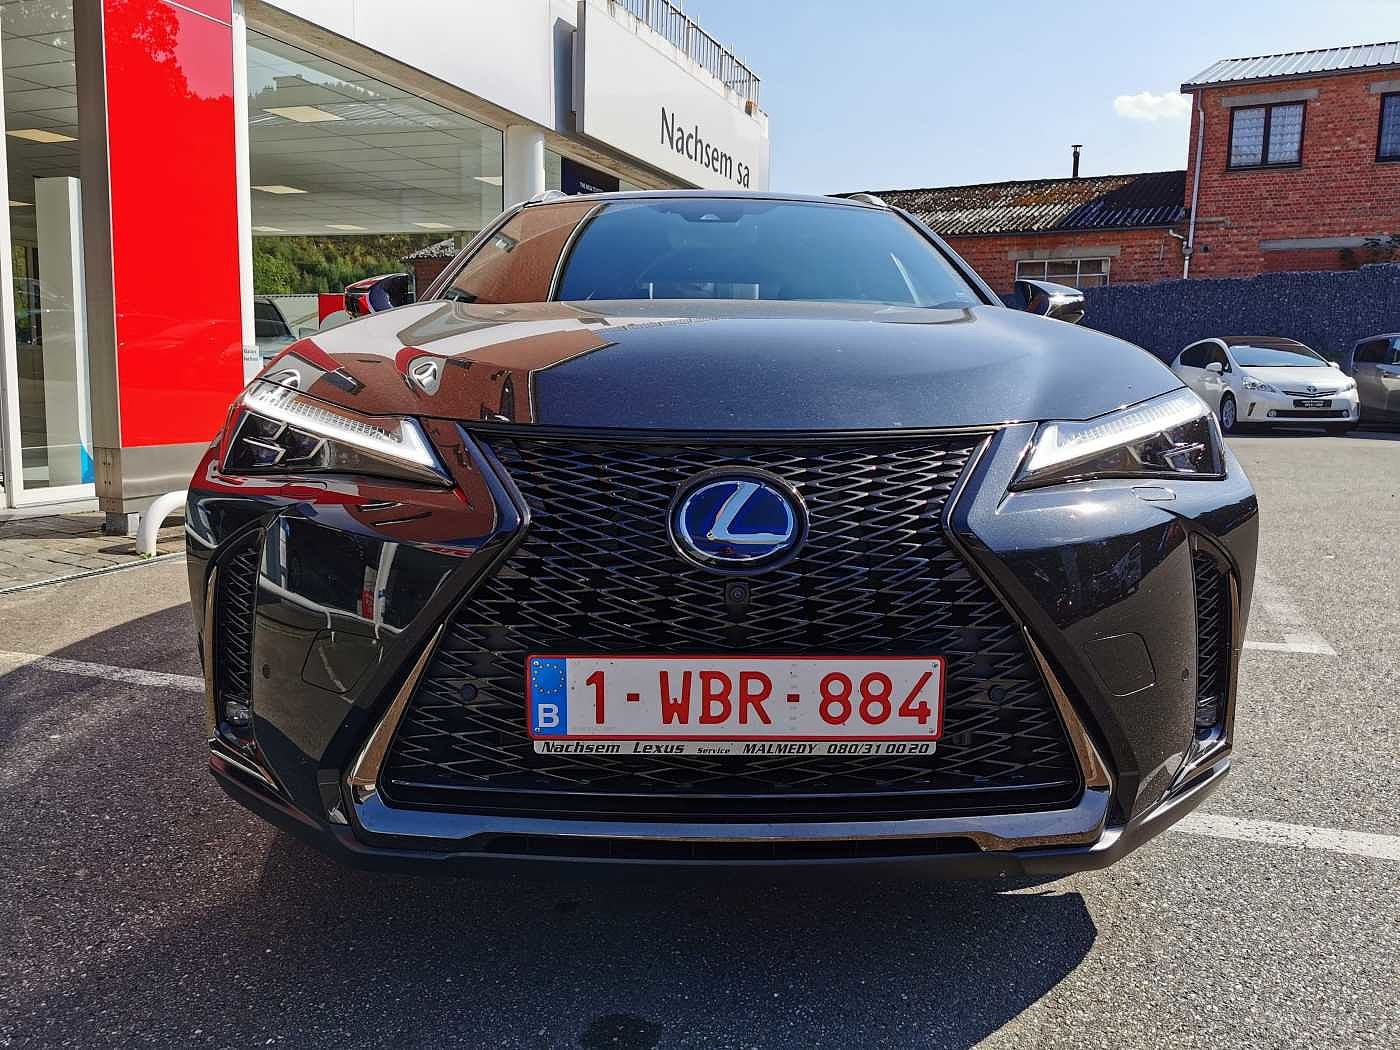 Lexus UX 250h 2.0 Hybrid AWD e-CVT - photo 4